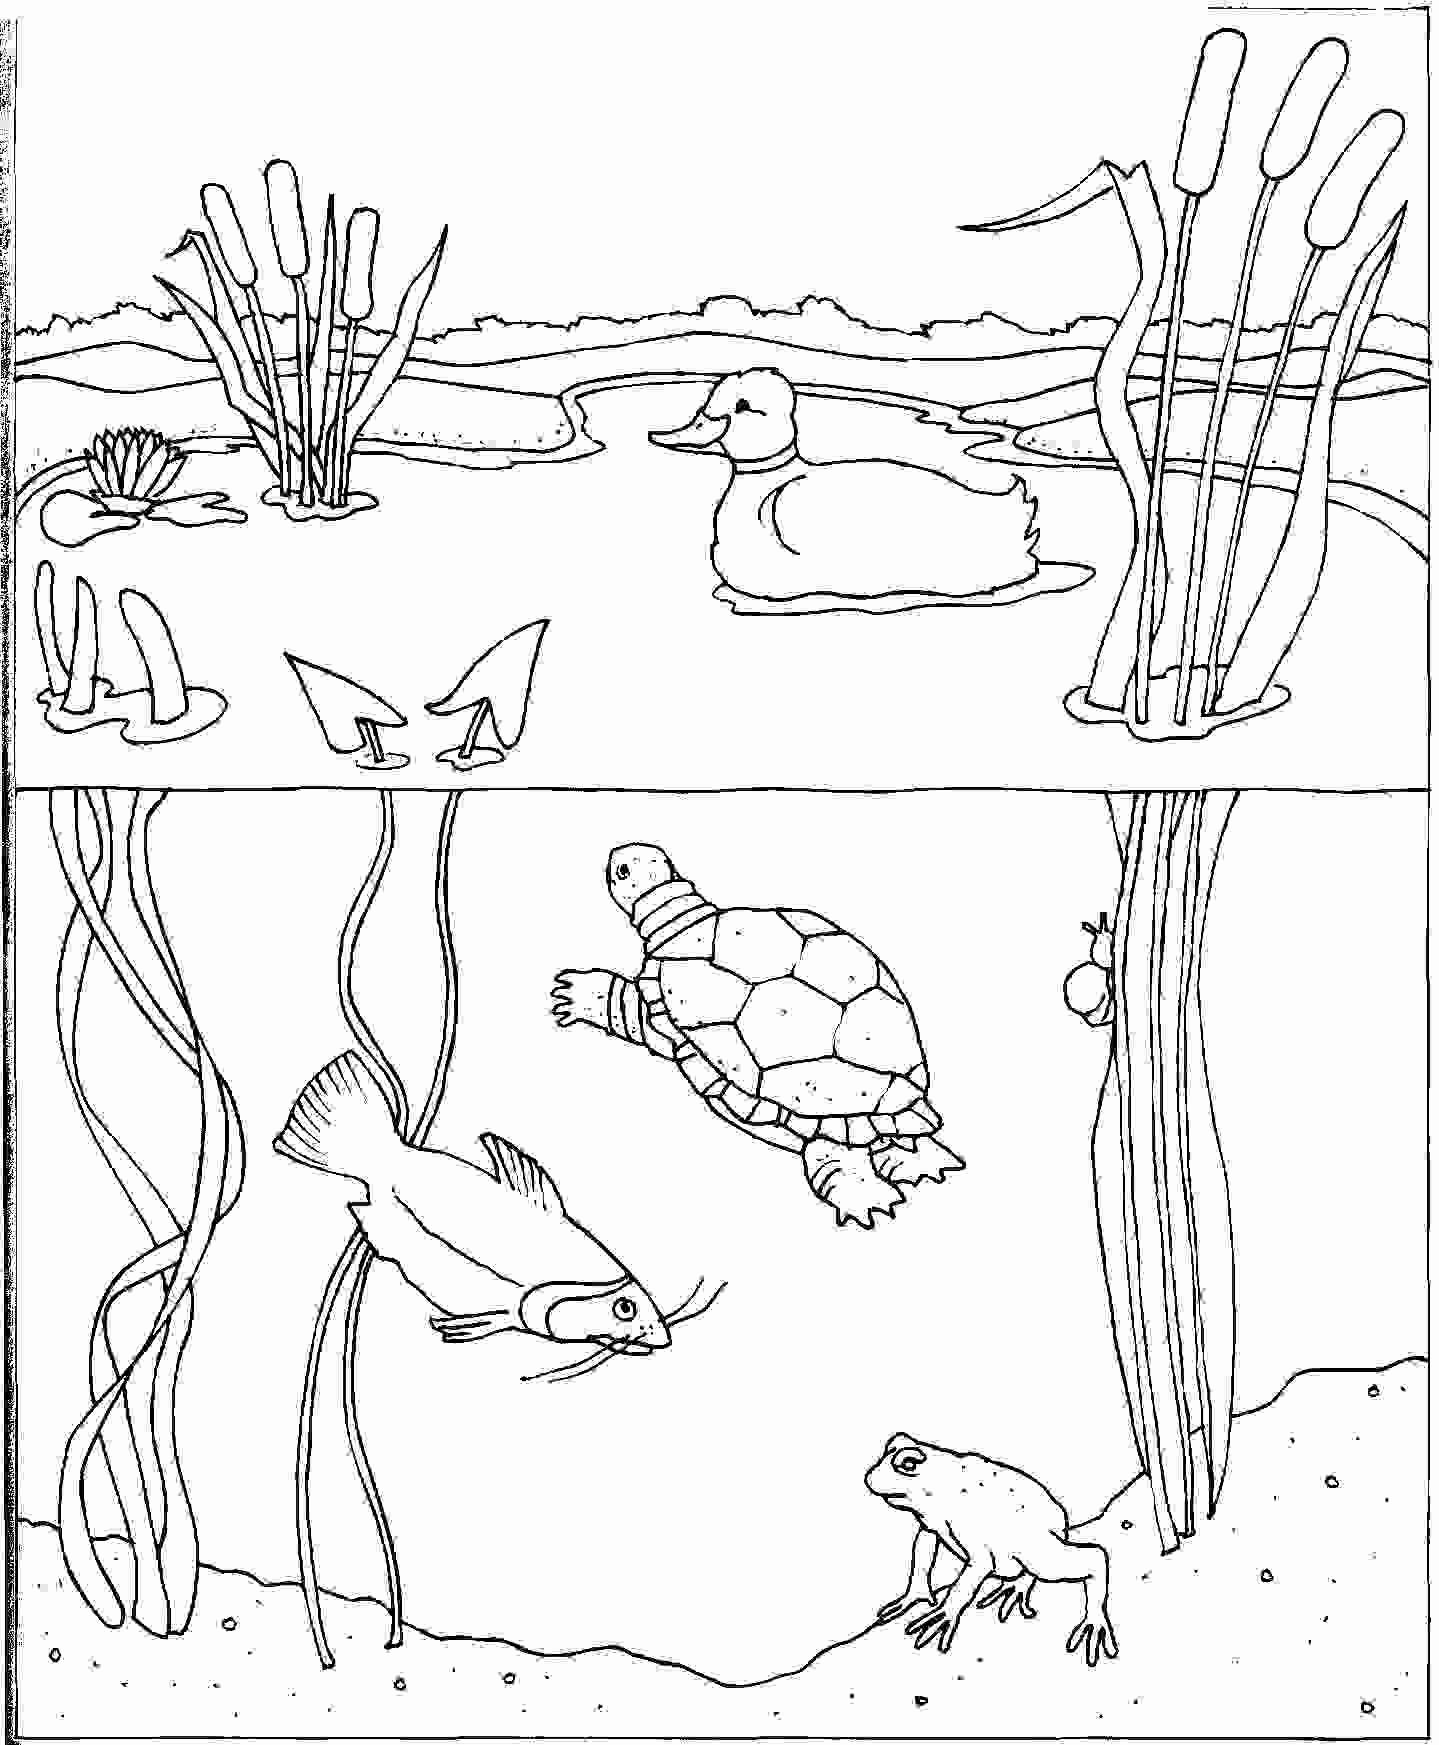 Water Cycle Coloring Page Elegant Free Coloring Page Water